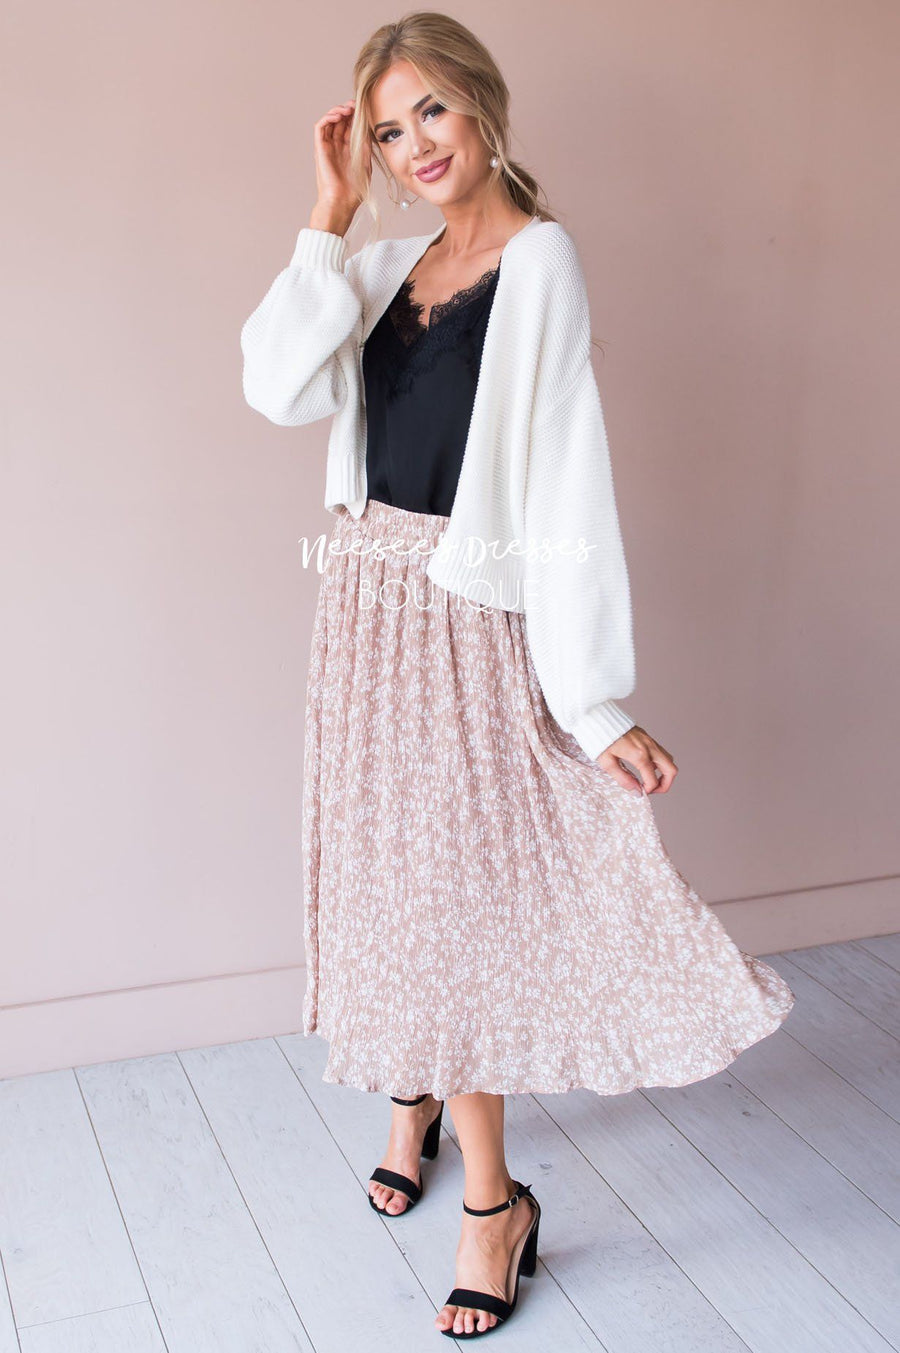 Keep it Flowy Skirt